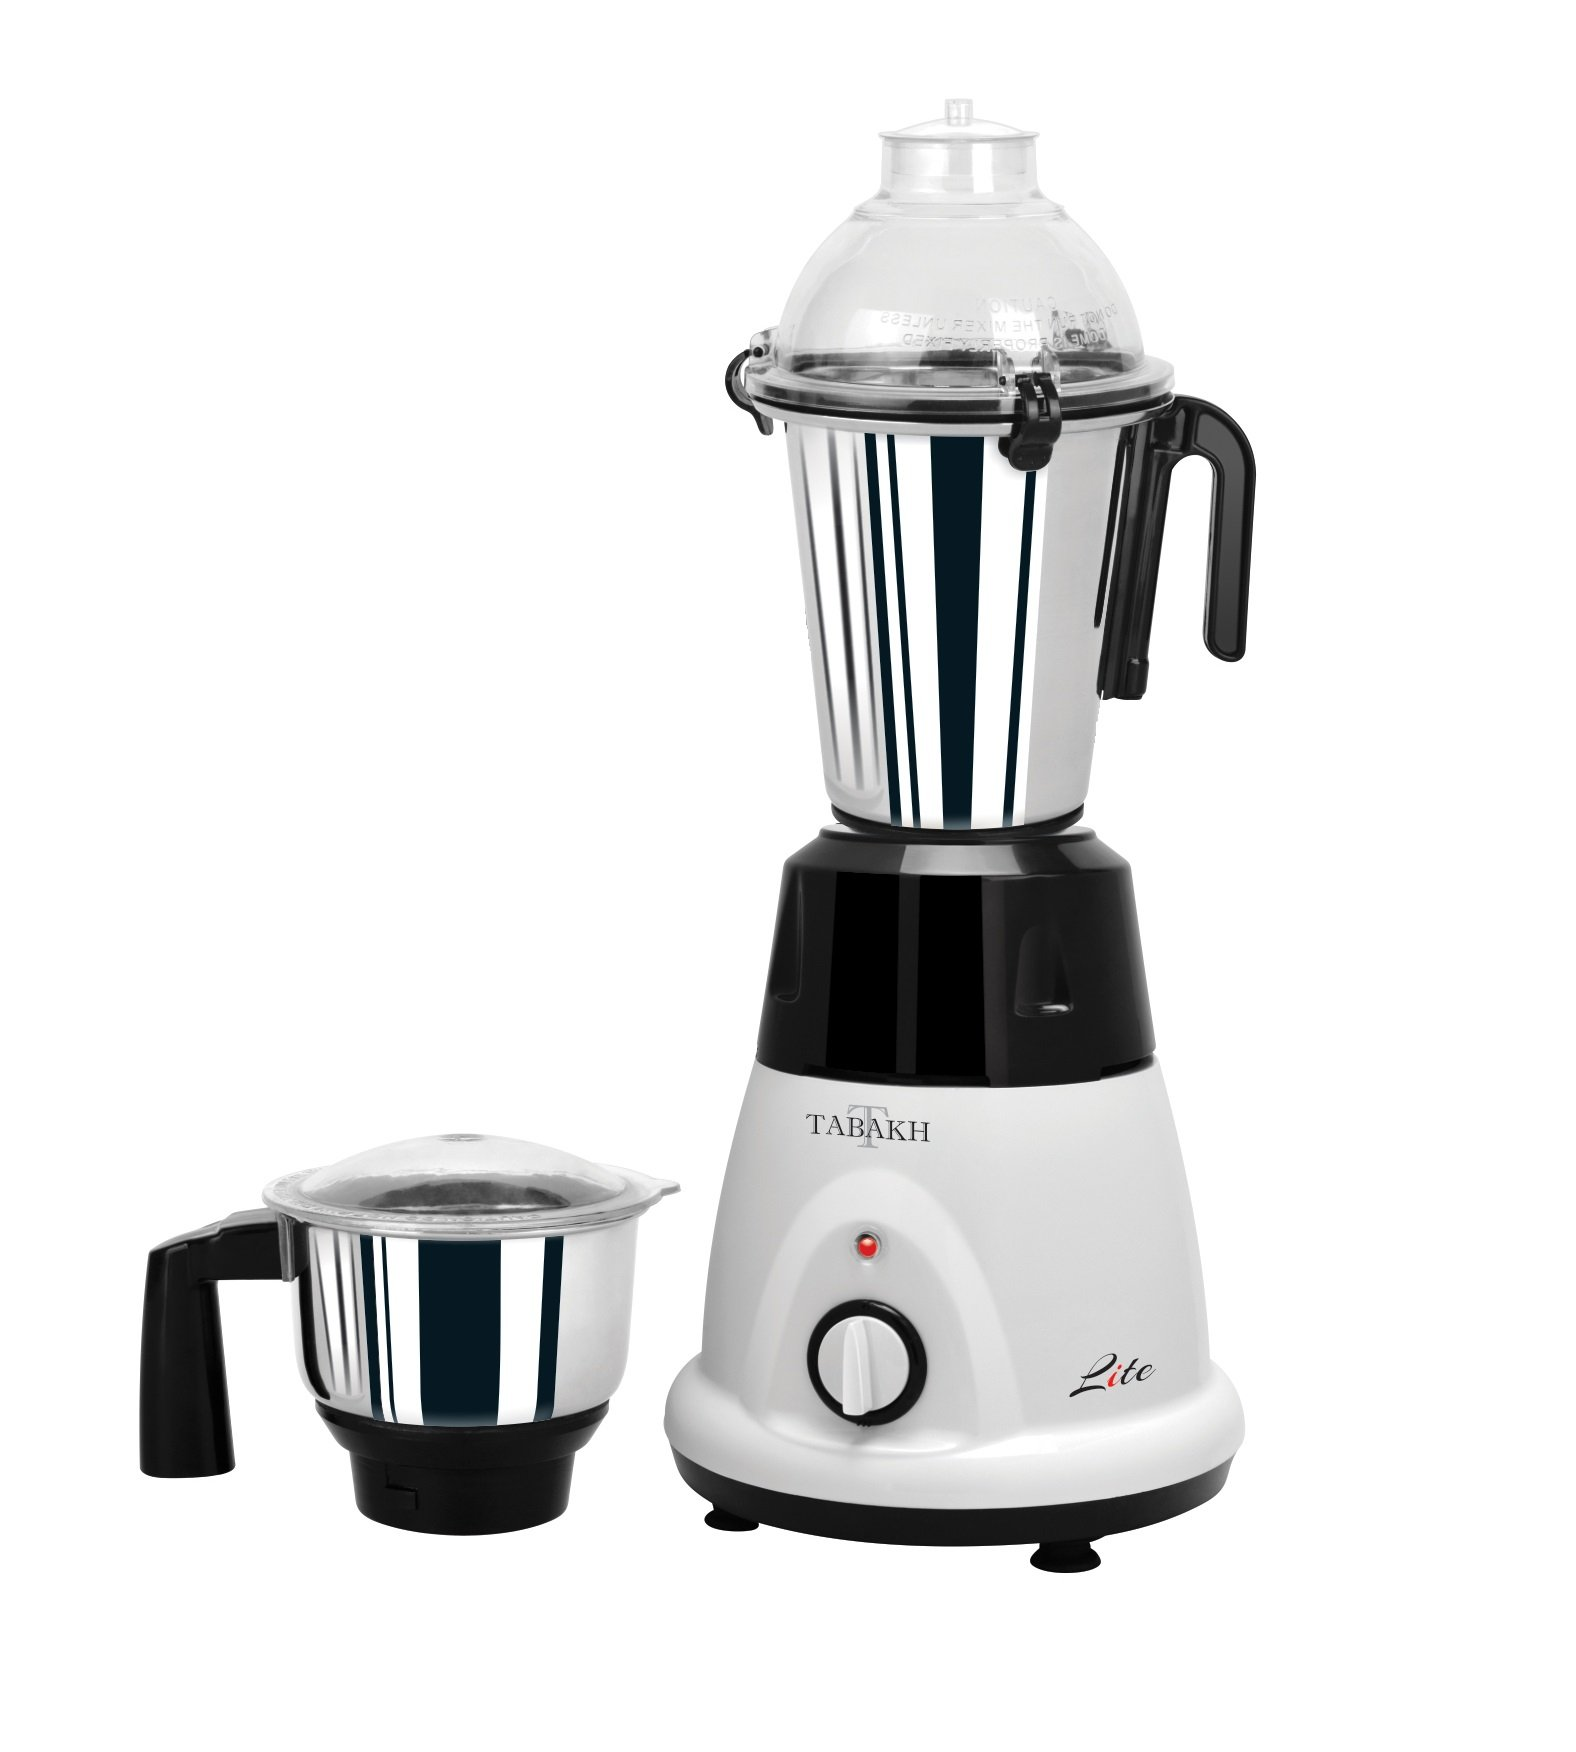 Tabakh Lite Indian Mixer Grinder | 2-Jar | 750 Watts | 110-Volts (USA & Canada) by Tabakh